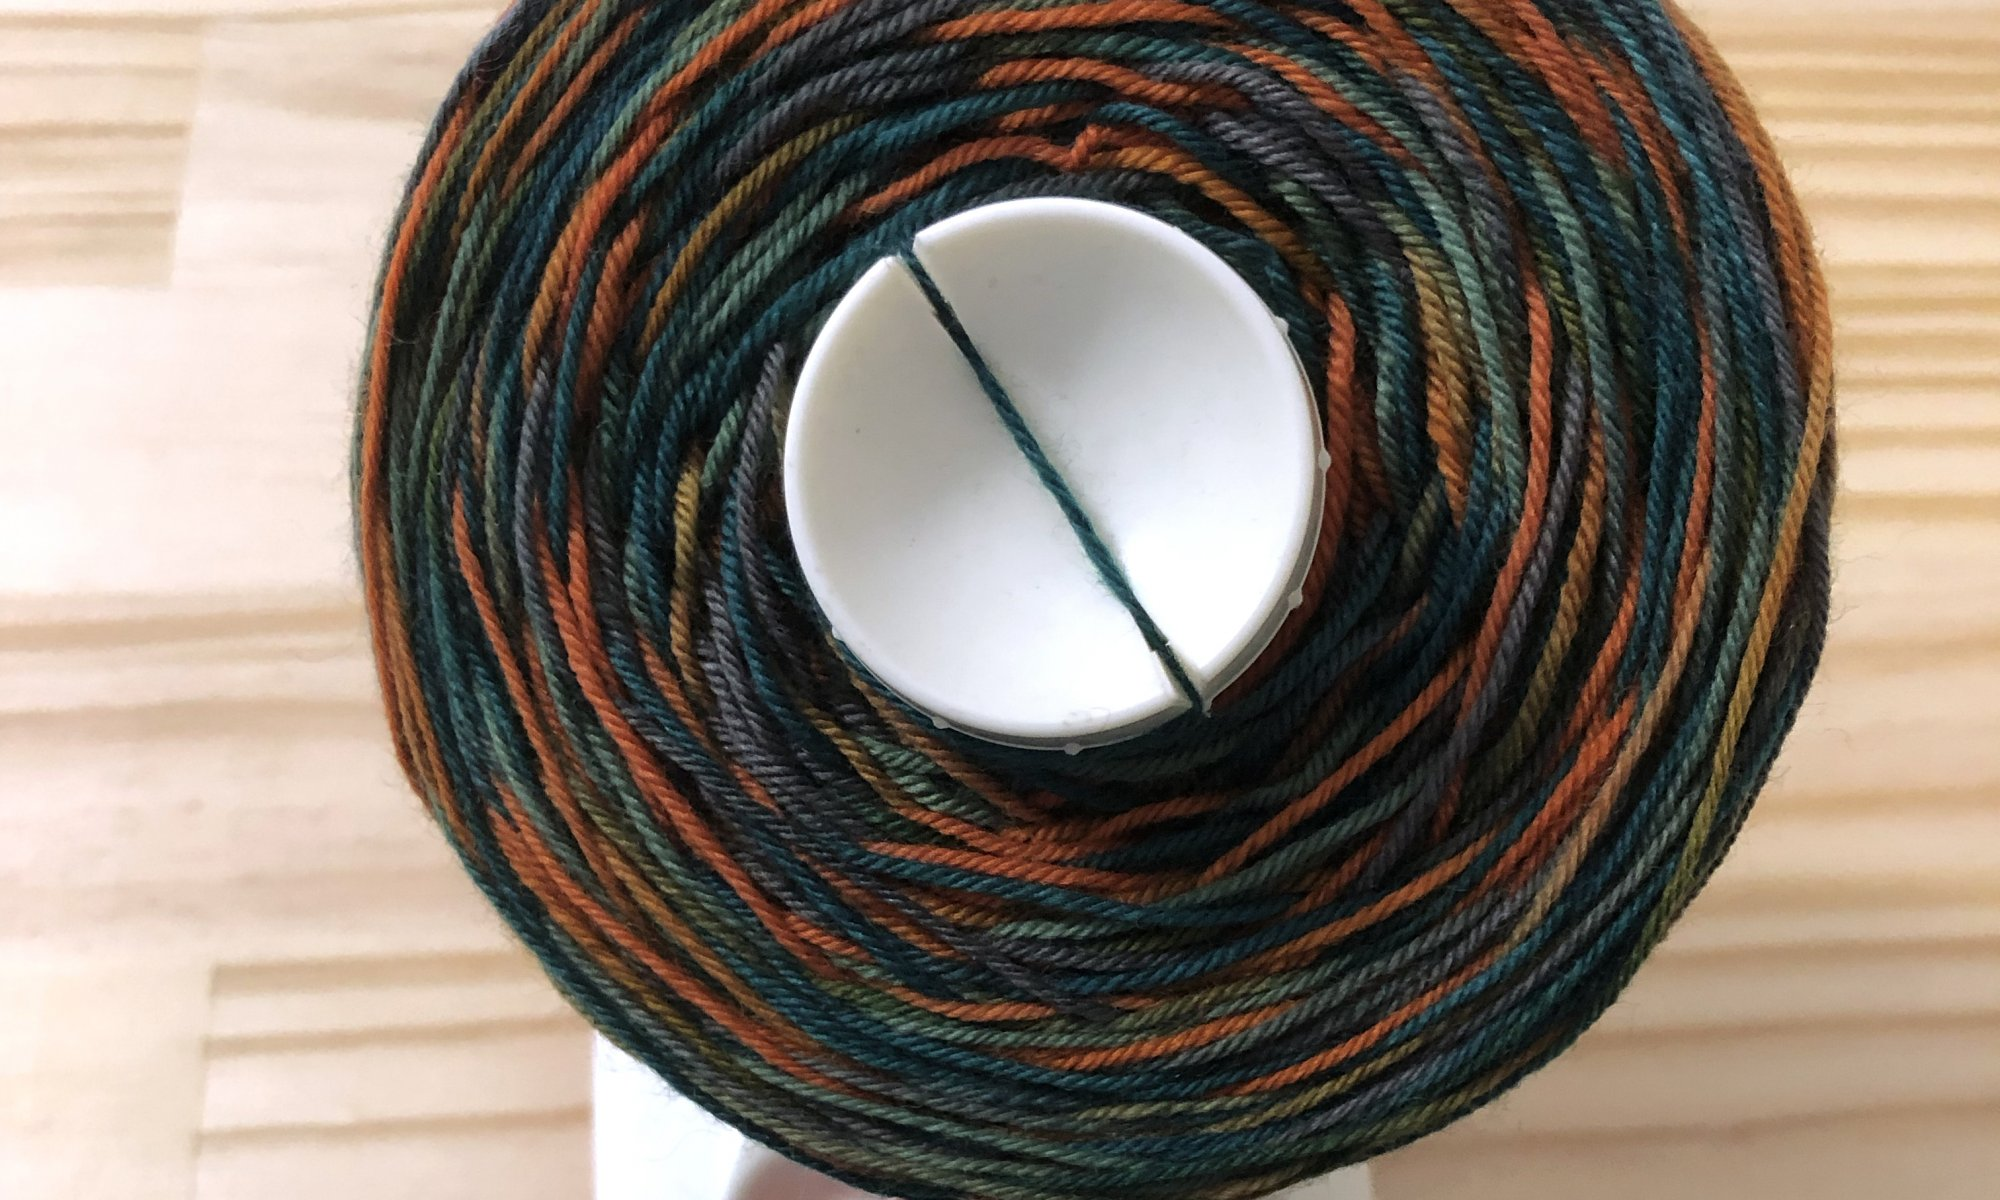 Yarn on winder